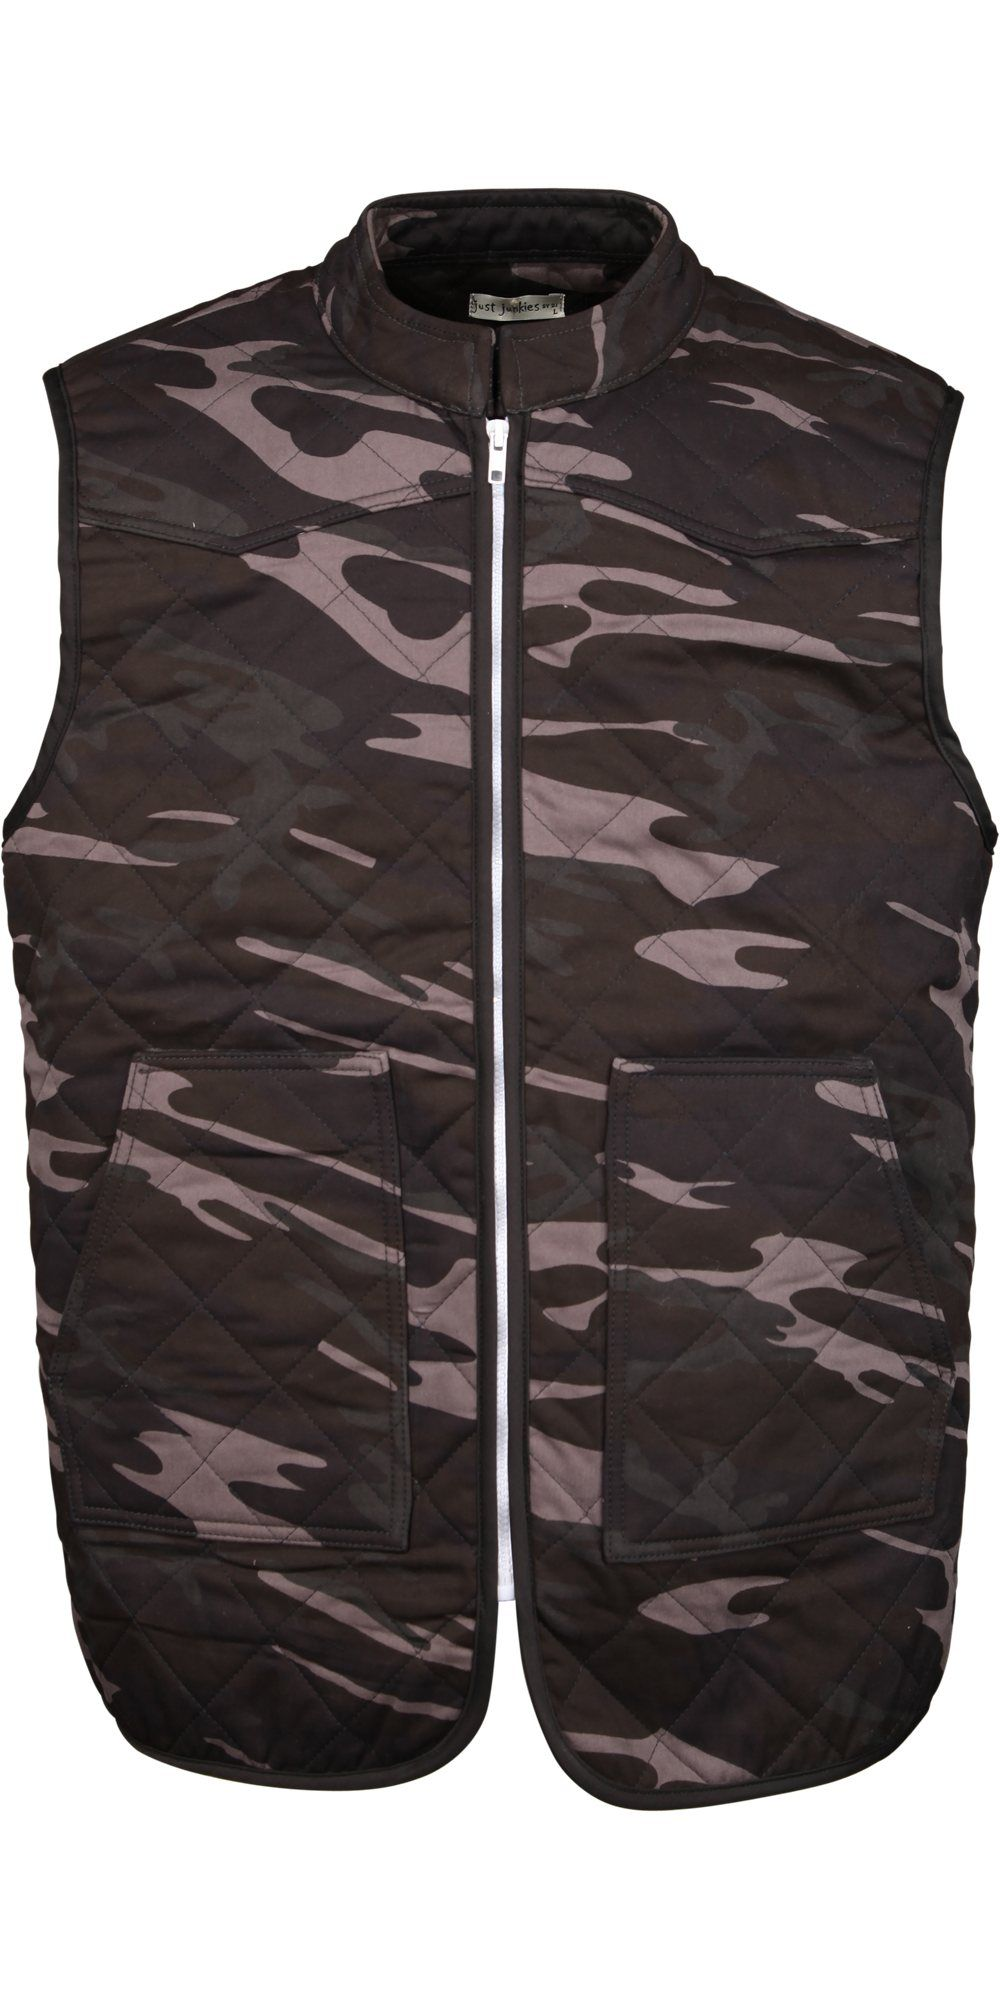 MAKI VEST CAMO  Just Junkies